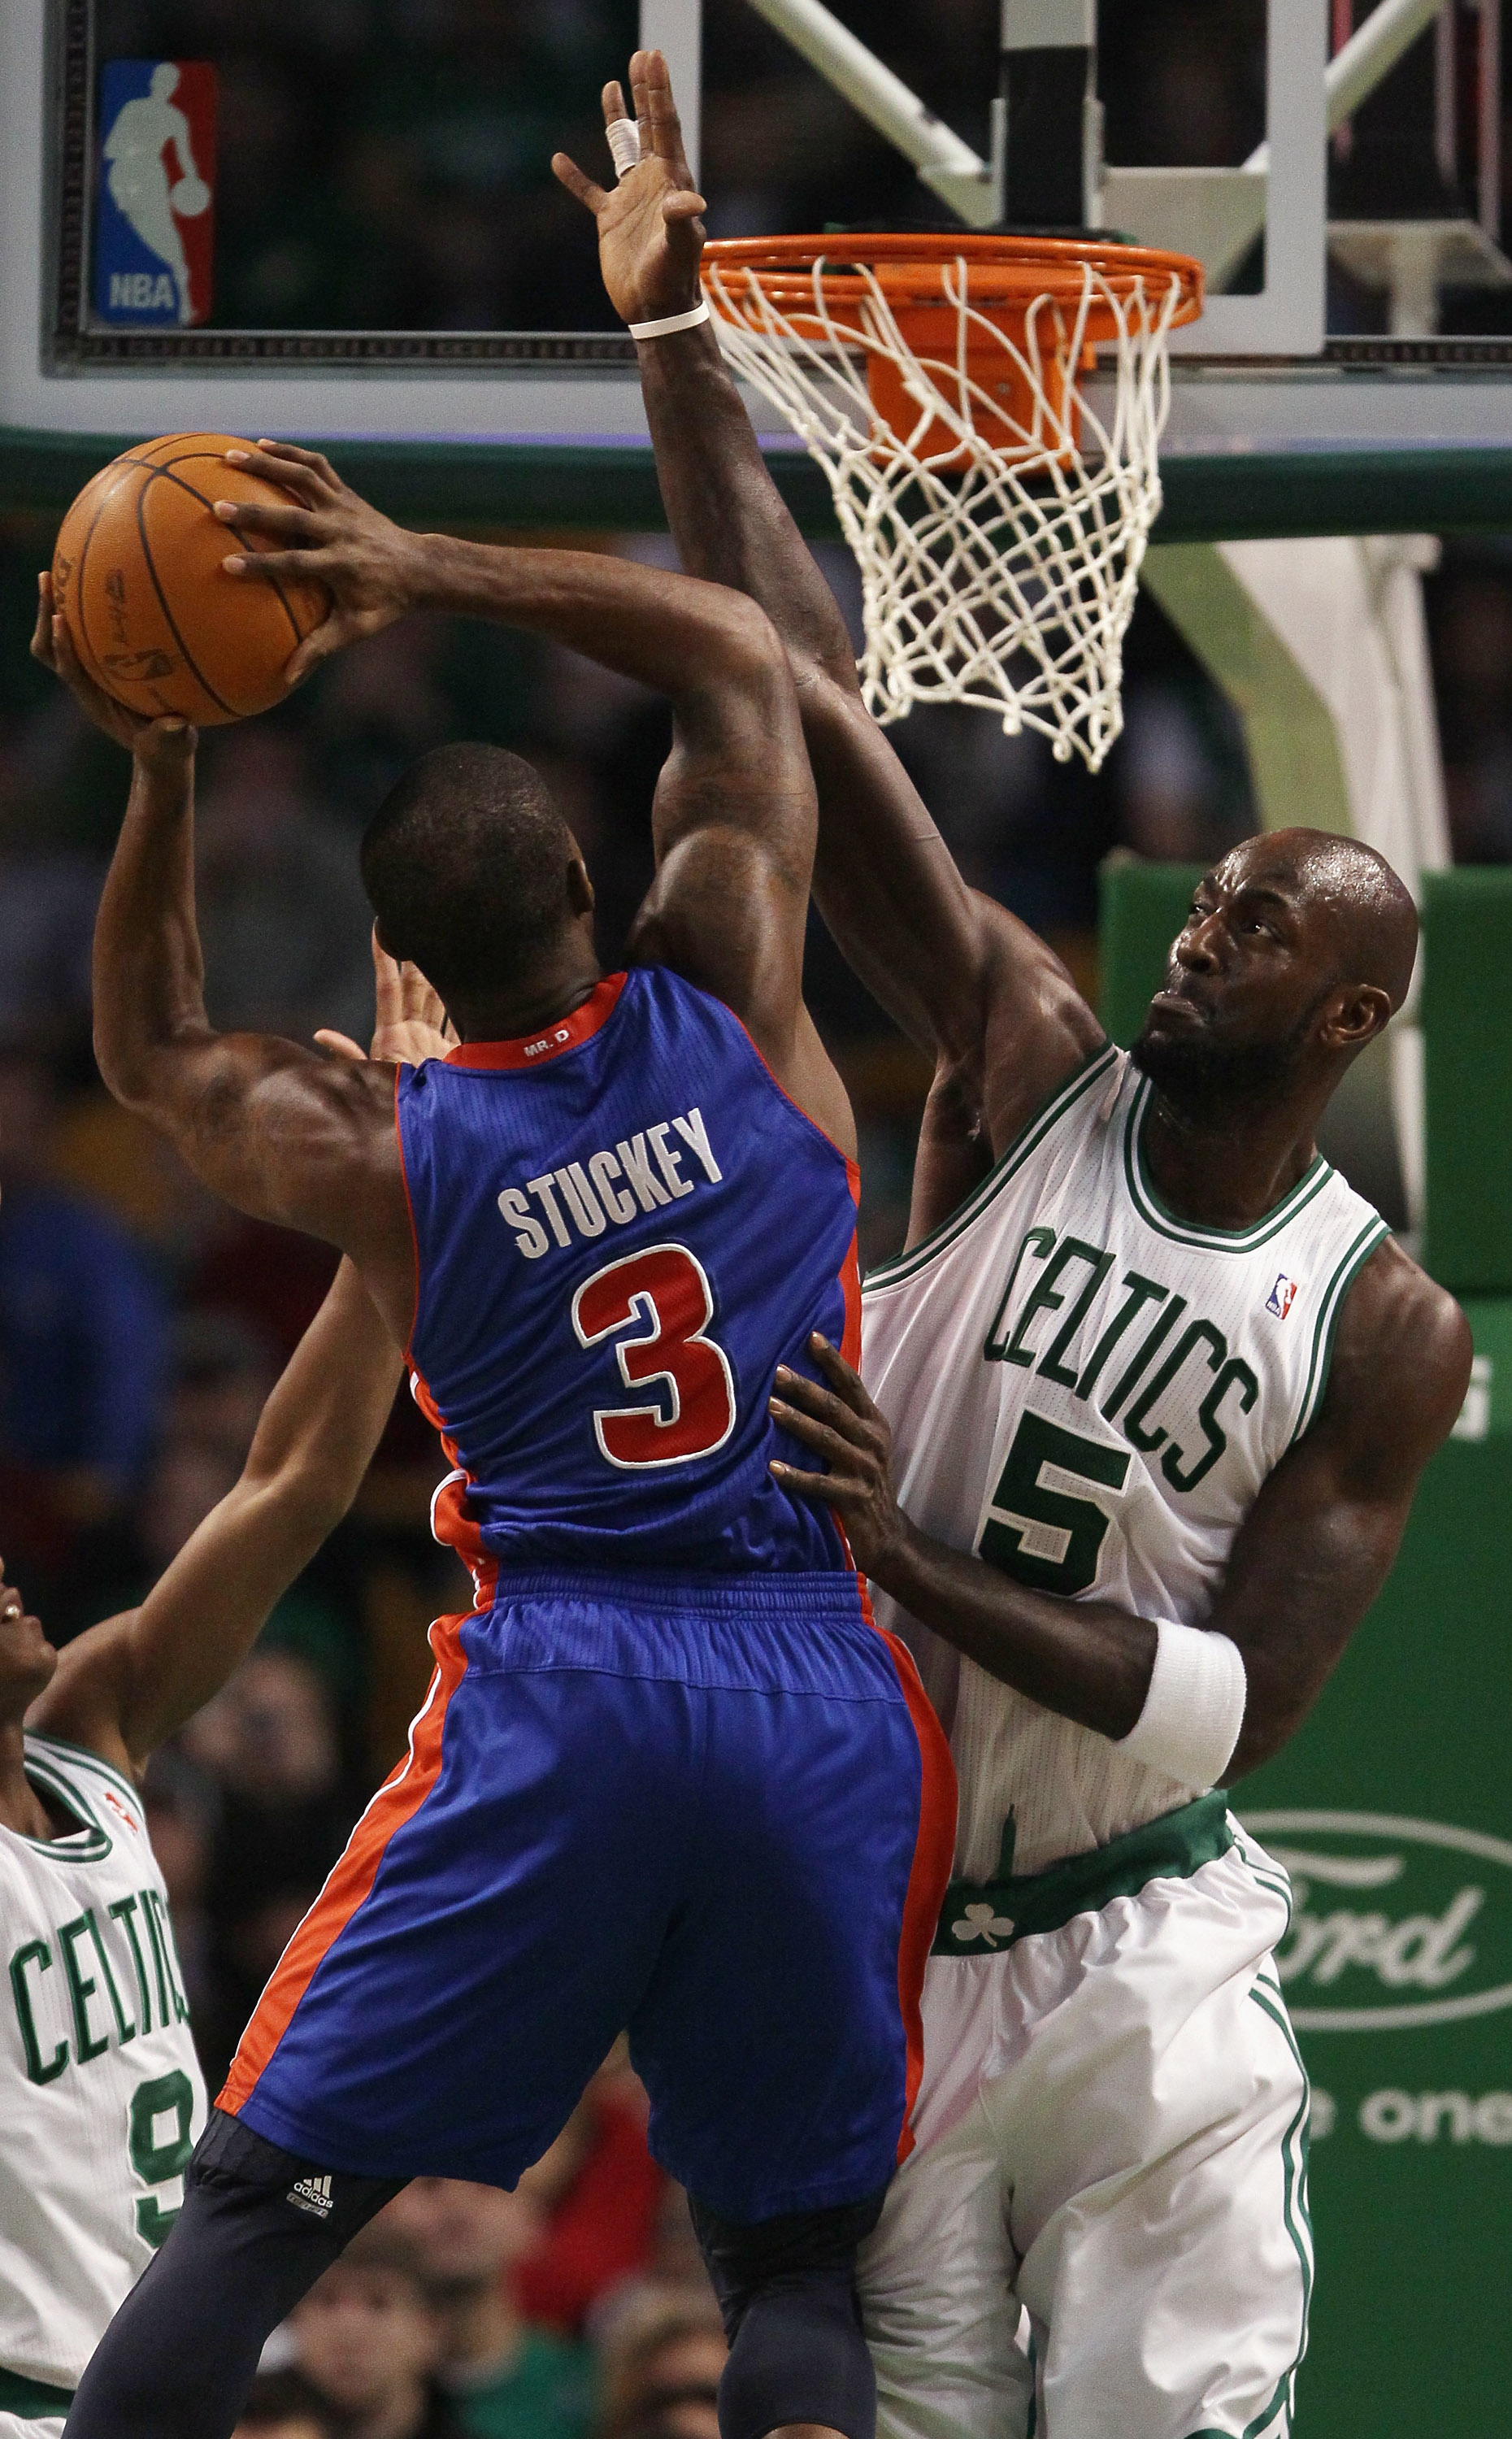 BOSTON, MA - JANUARY 19:  Kevin Garnett #5 of the Boston Celtics blocks as Rodney Stuckey #3 of the Detroit Pistons takes a shot on January 19, 2011 at the TD Garden in Boston, Massachusetts.  NOTE TO USER: User expressly acknowledges and agrees that, by